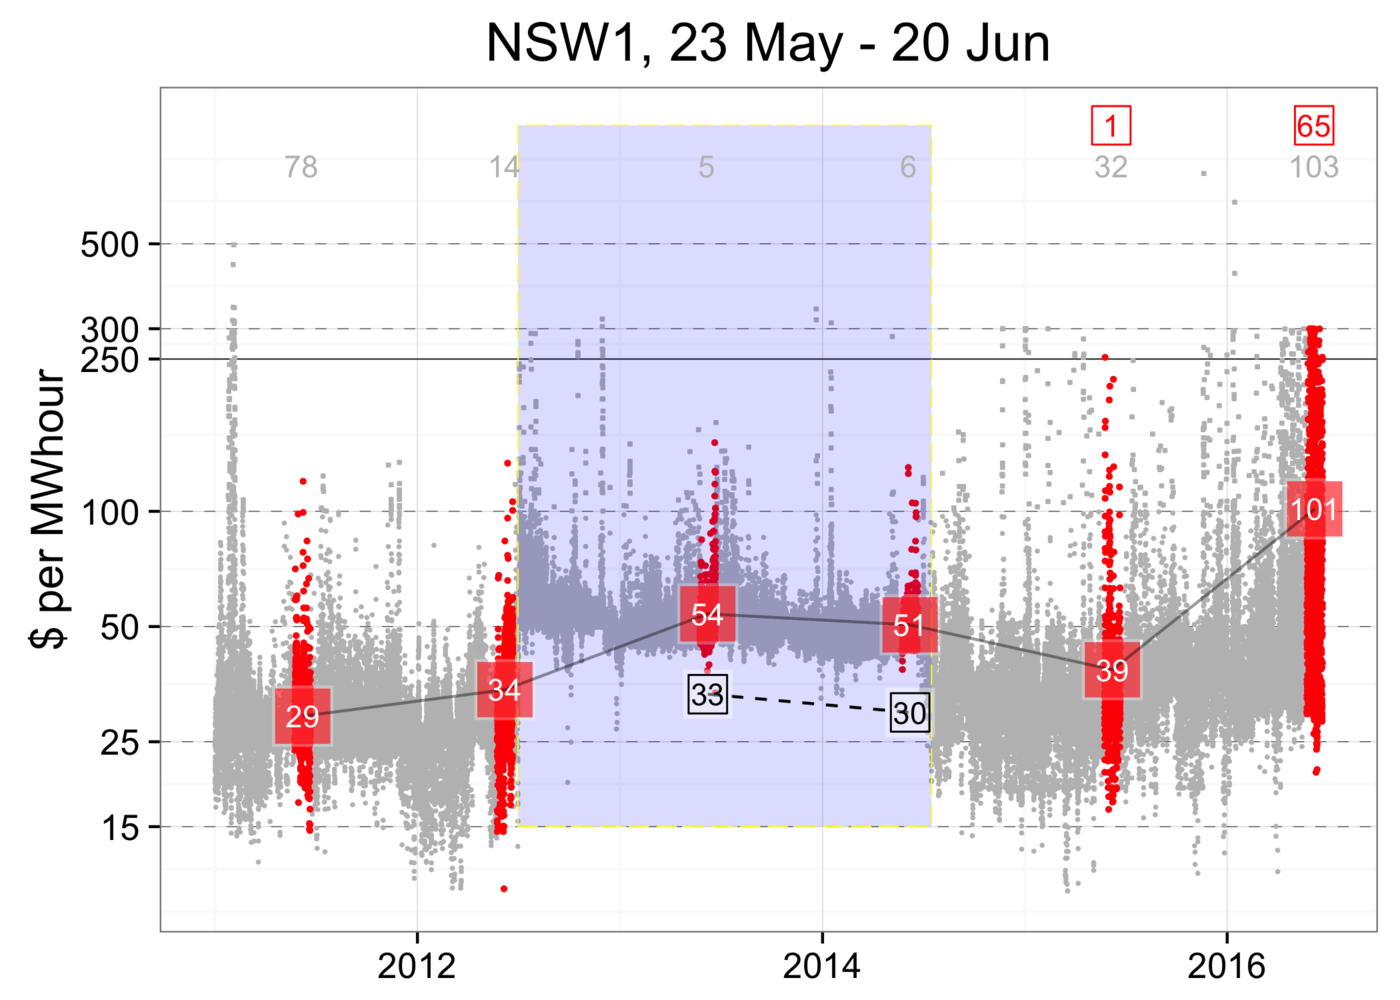 wholesale electricity prices for NSW since 2011